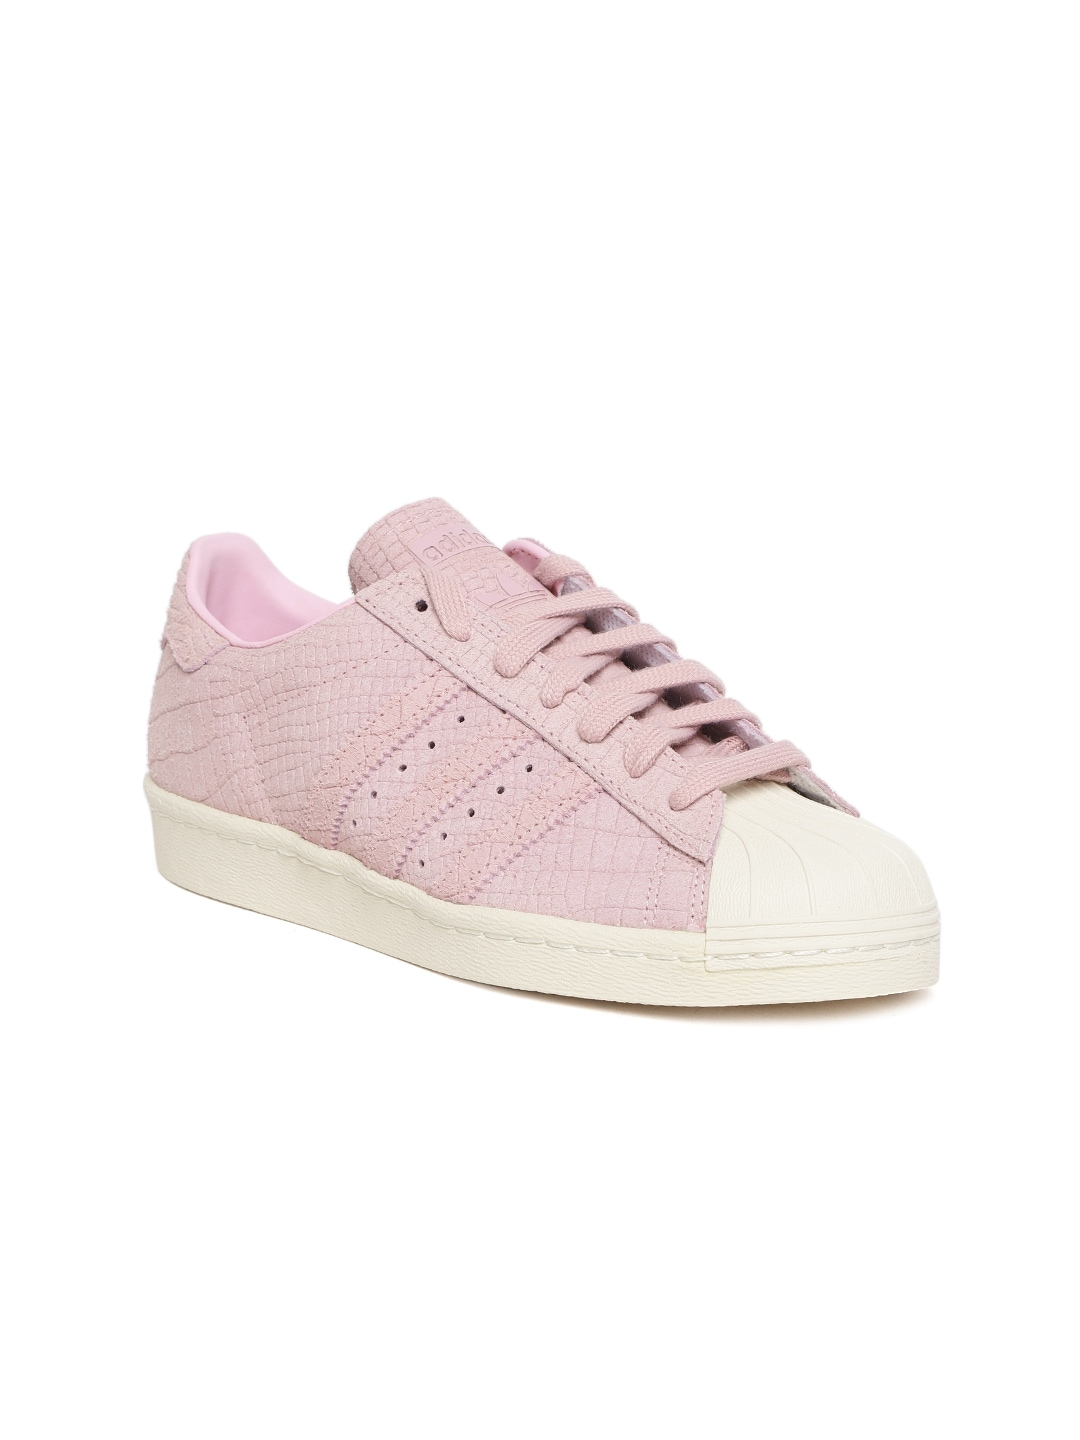 Online Buy Women Adidas Shoes In India Flats dWQxrBeCo